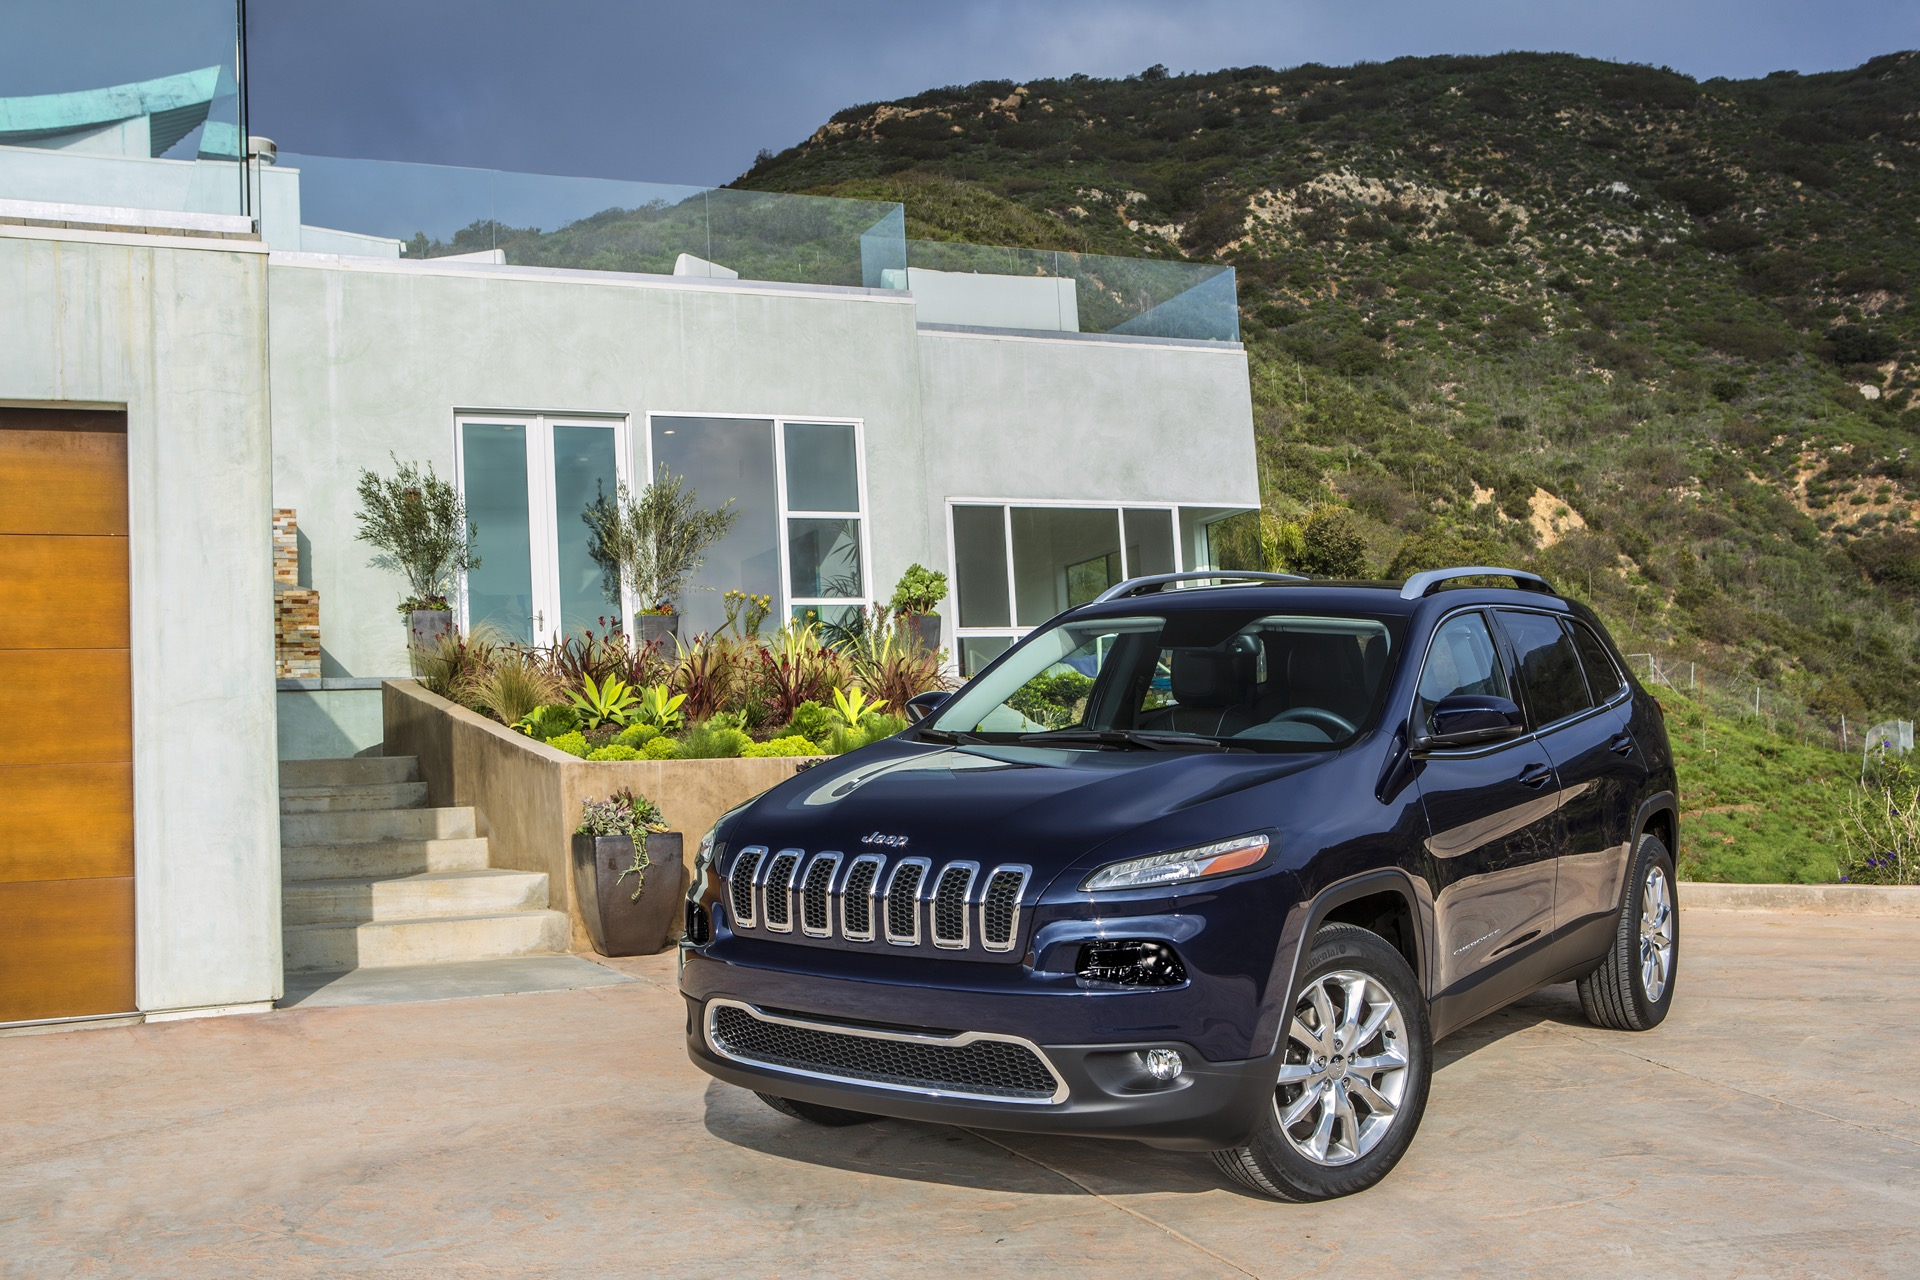 2016 jeep cherokee gas mileage the car connection. Black Bedroom Furniture Sets. Home Design Ideas